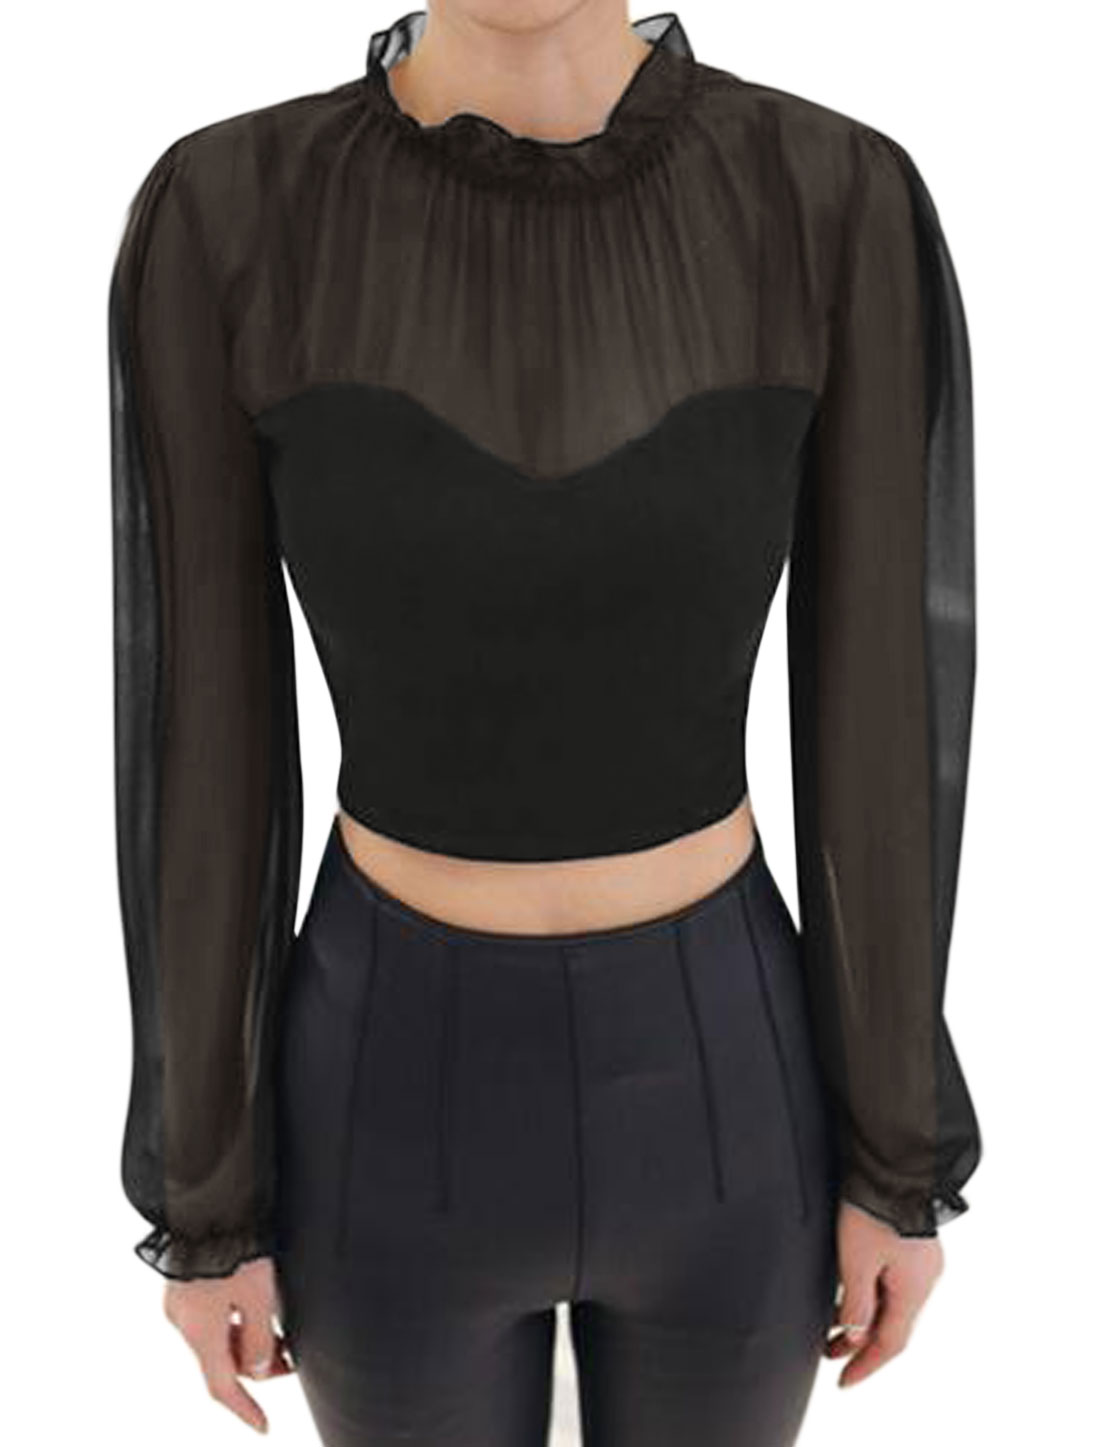 Women Ruffled Collar Semi Sheer Yoke Chiffon Panel Crop Top Black M